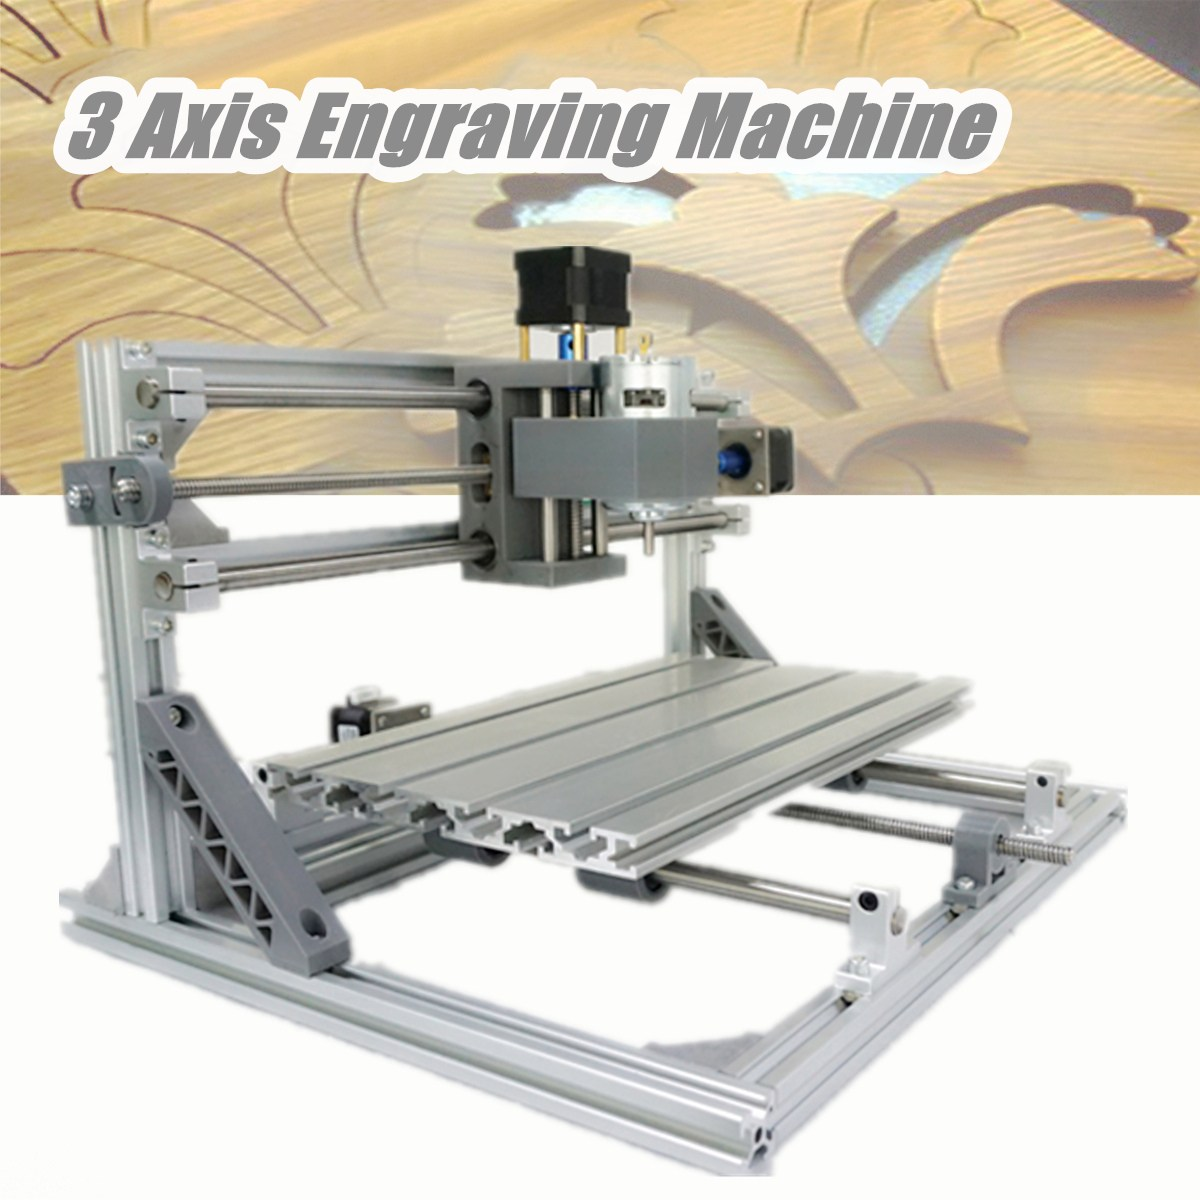 DIY Mini CNC Router Laser Machine 3 Axis 3018 ER11 GRBL Control Pcb Pvc Milling Wood Router Wood Router Laser Engraving brand 2017 hoodie new zipper cuff print casual hoodies men fashion tracksuit male sweatshirt off white hoody mens purpose tour